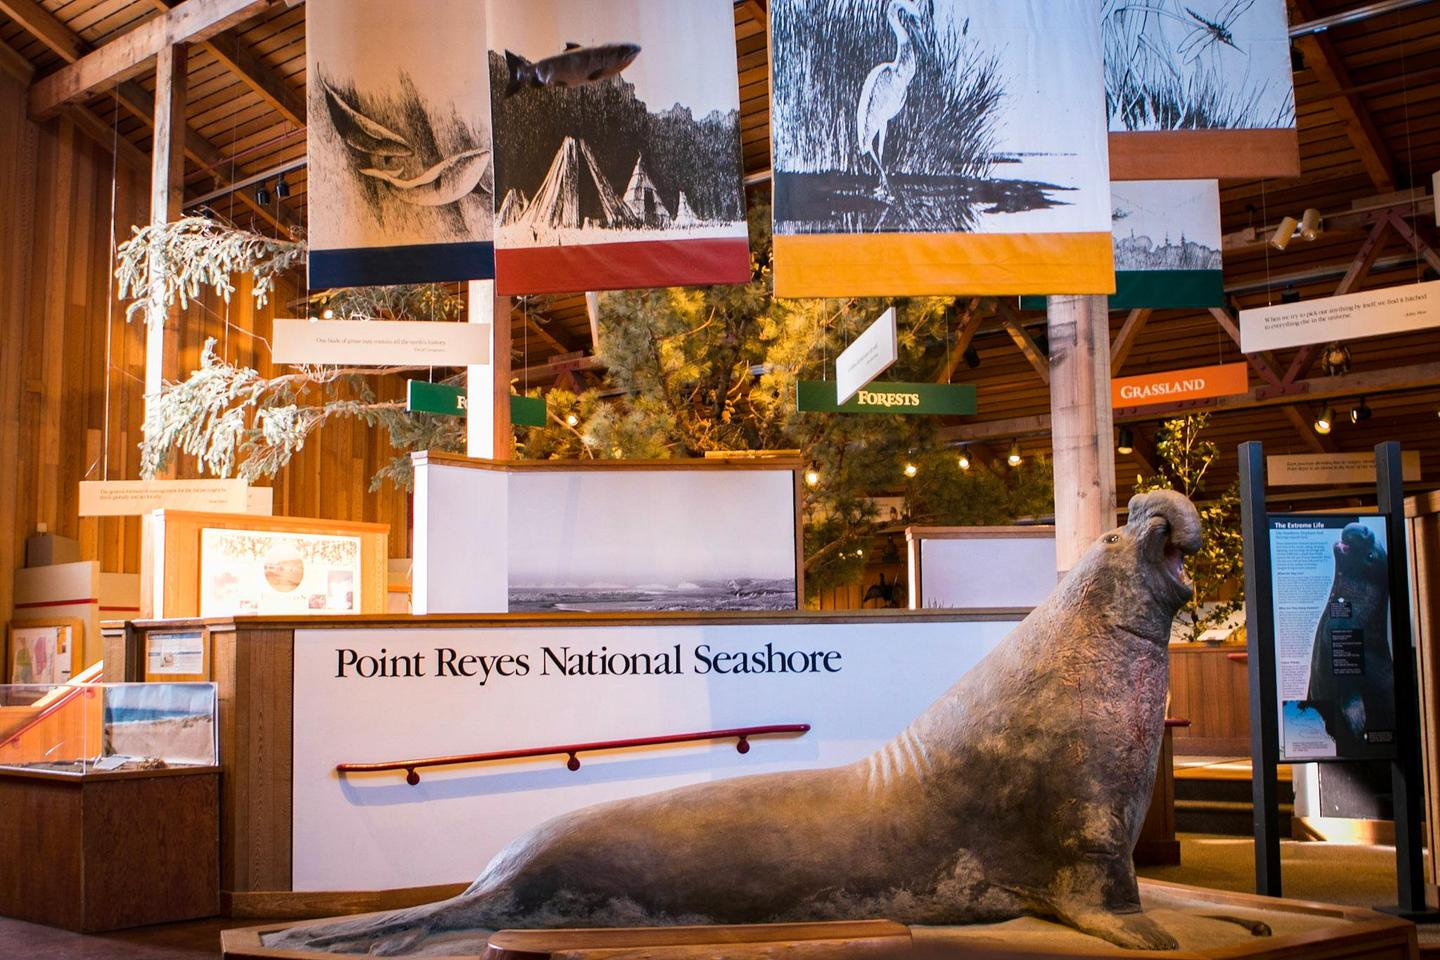 Bear Valley Visitor Center: Elephant Seal ModelOne of the first things visitors notice upon entering the Bear Valley Visitor Center is a full-size model of a bull elephant seal.